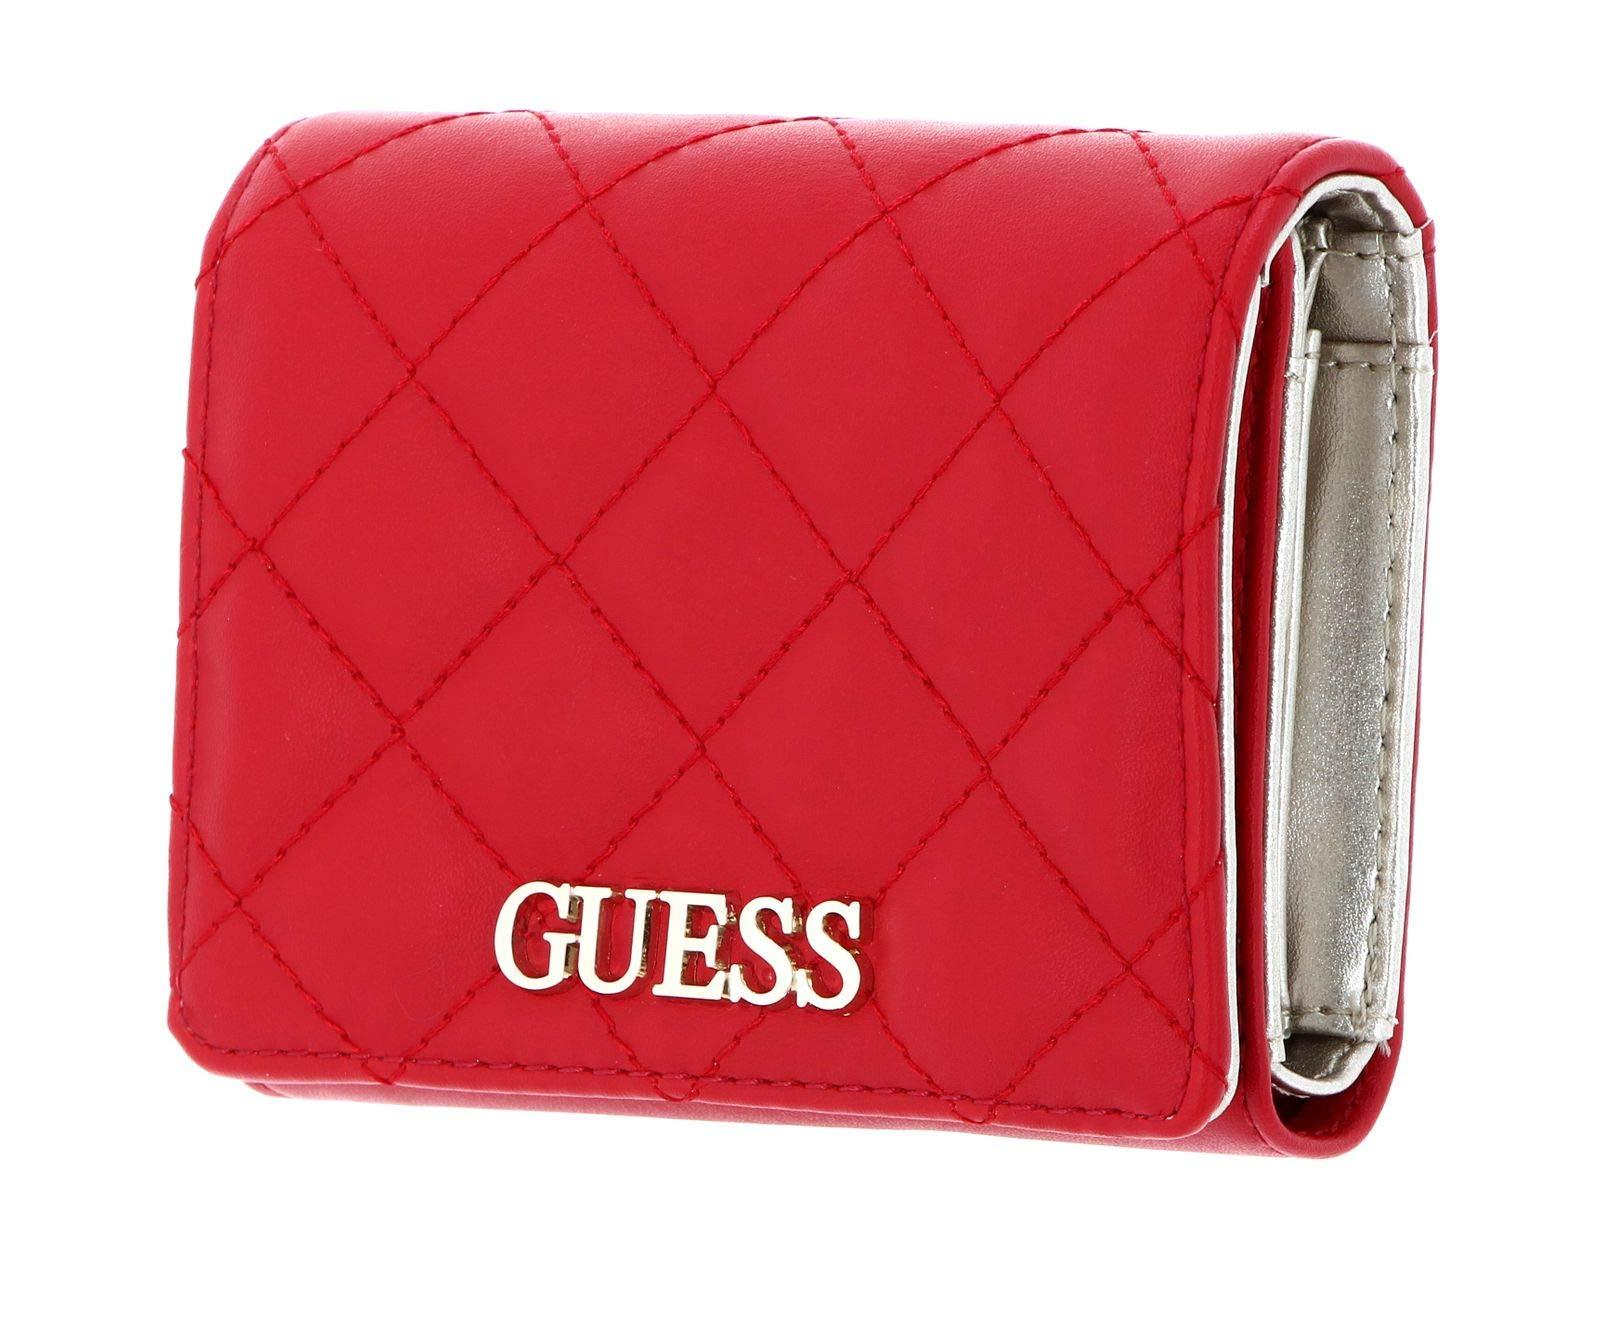 Medium GUESS Womens SWVG79-70430-RED Accessory-Travel Wallet Red